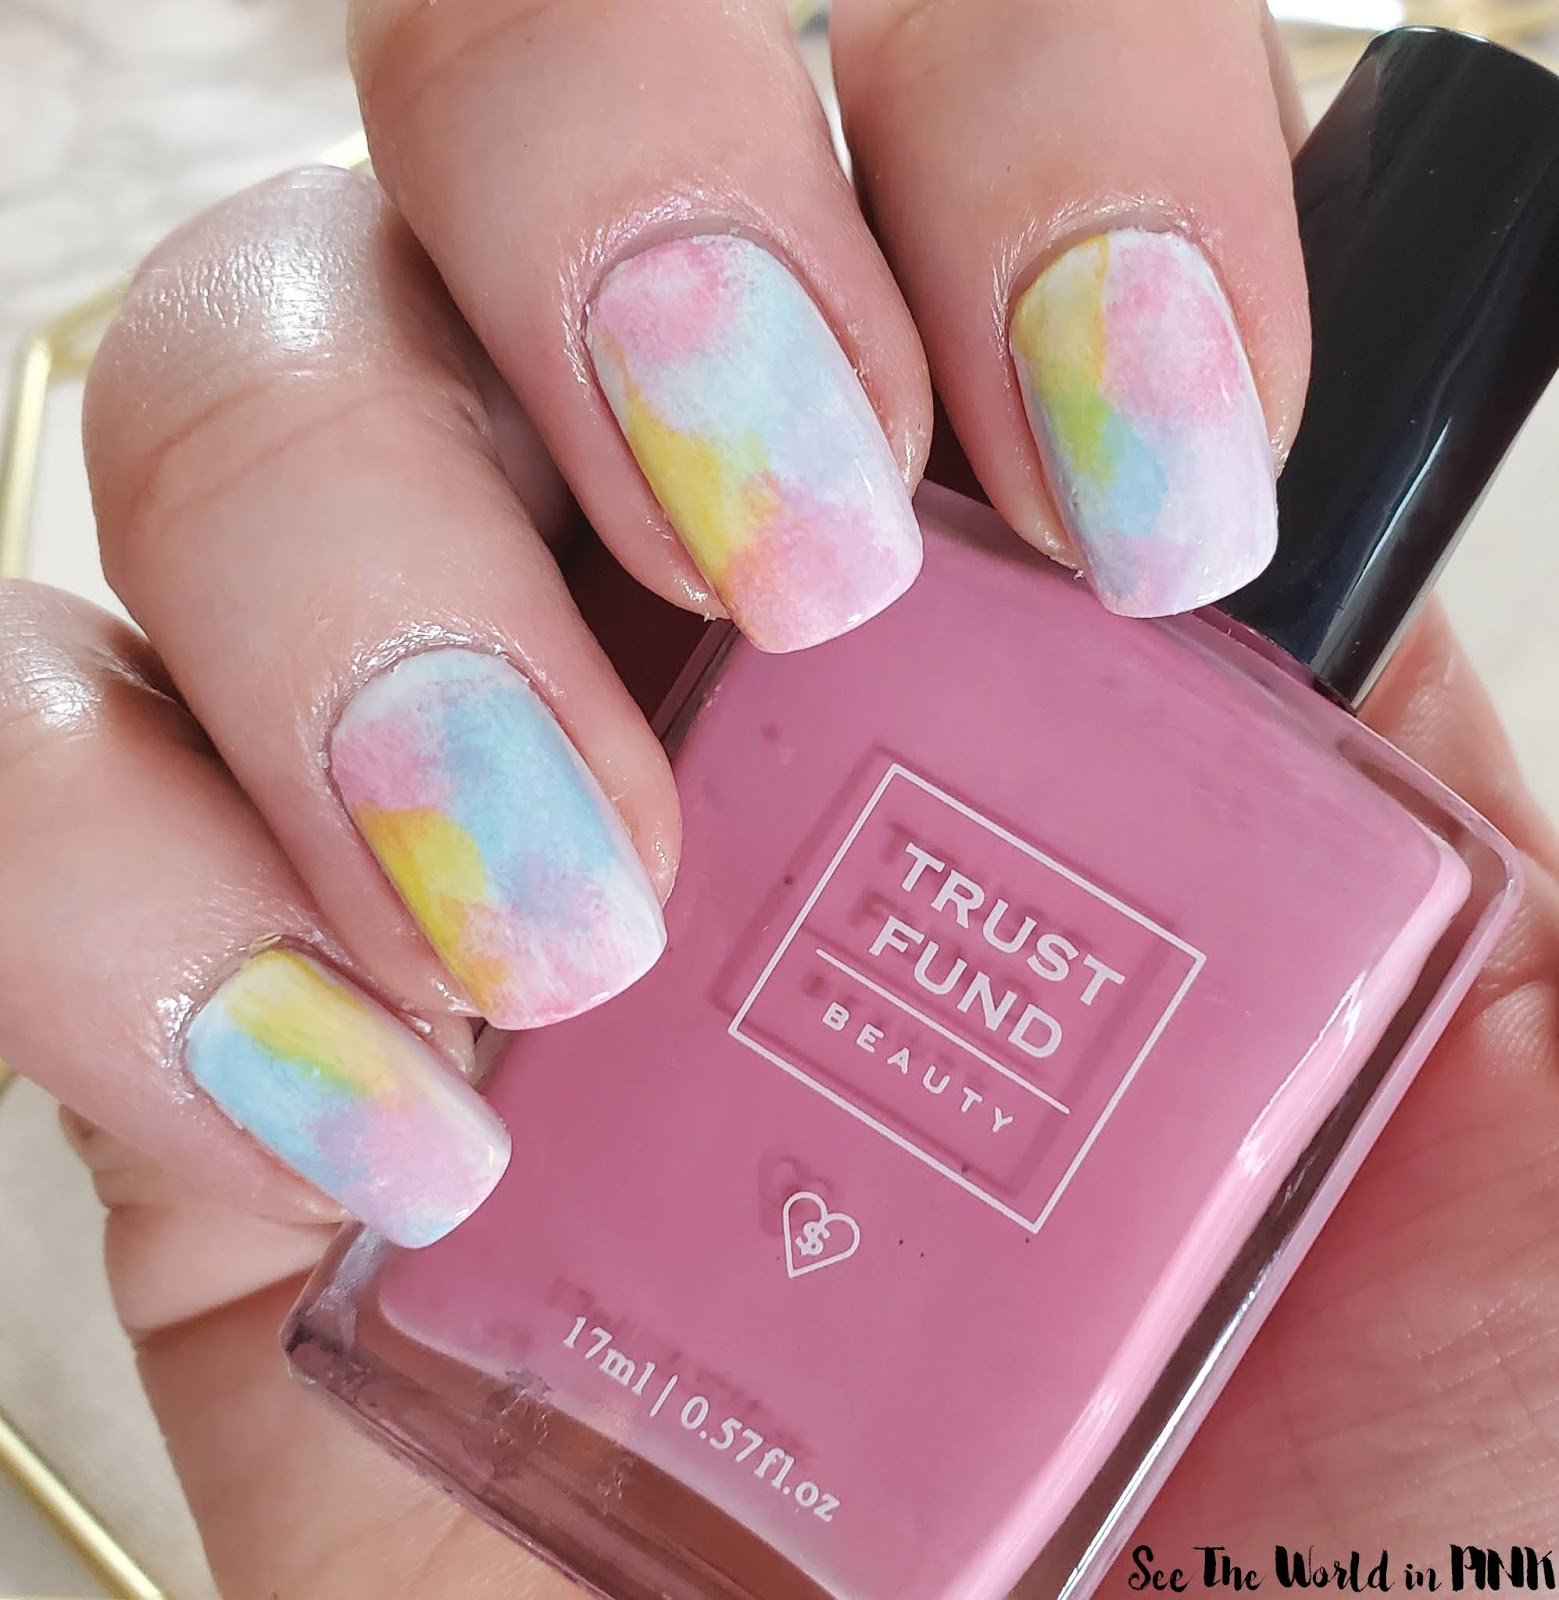 Manicure Monday - Tie Dye Nails